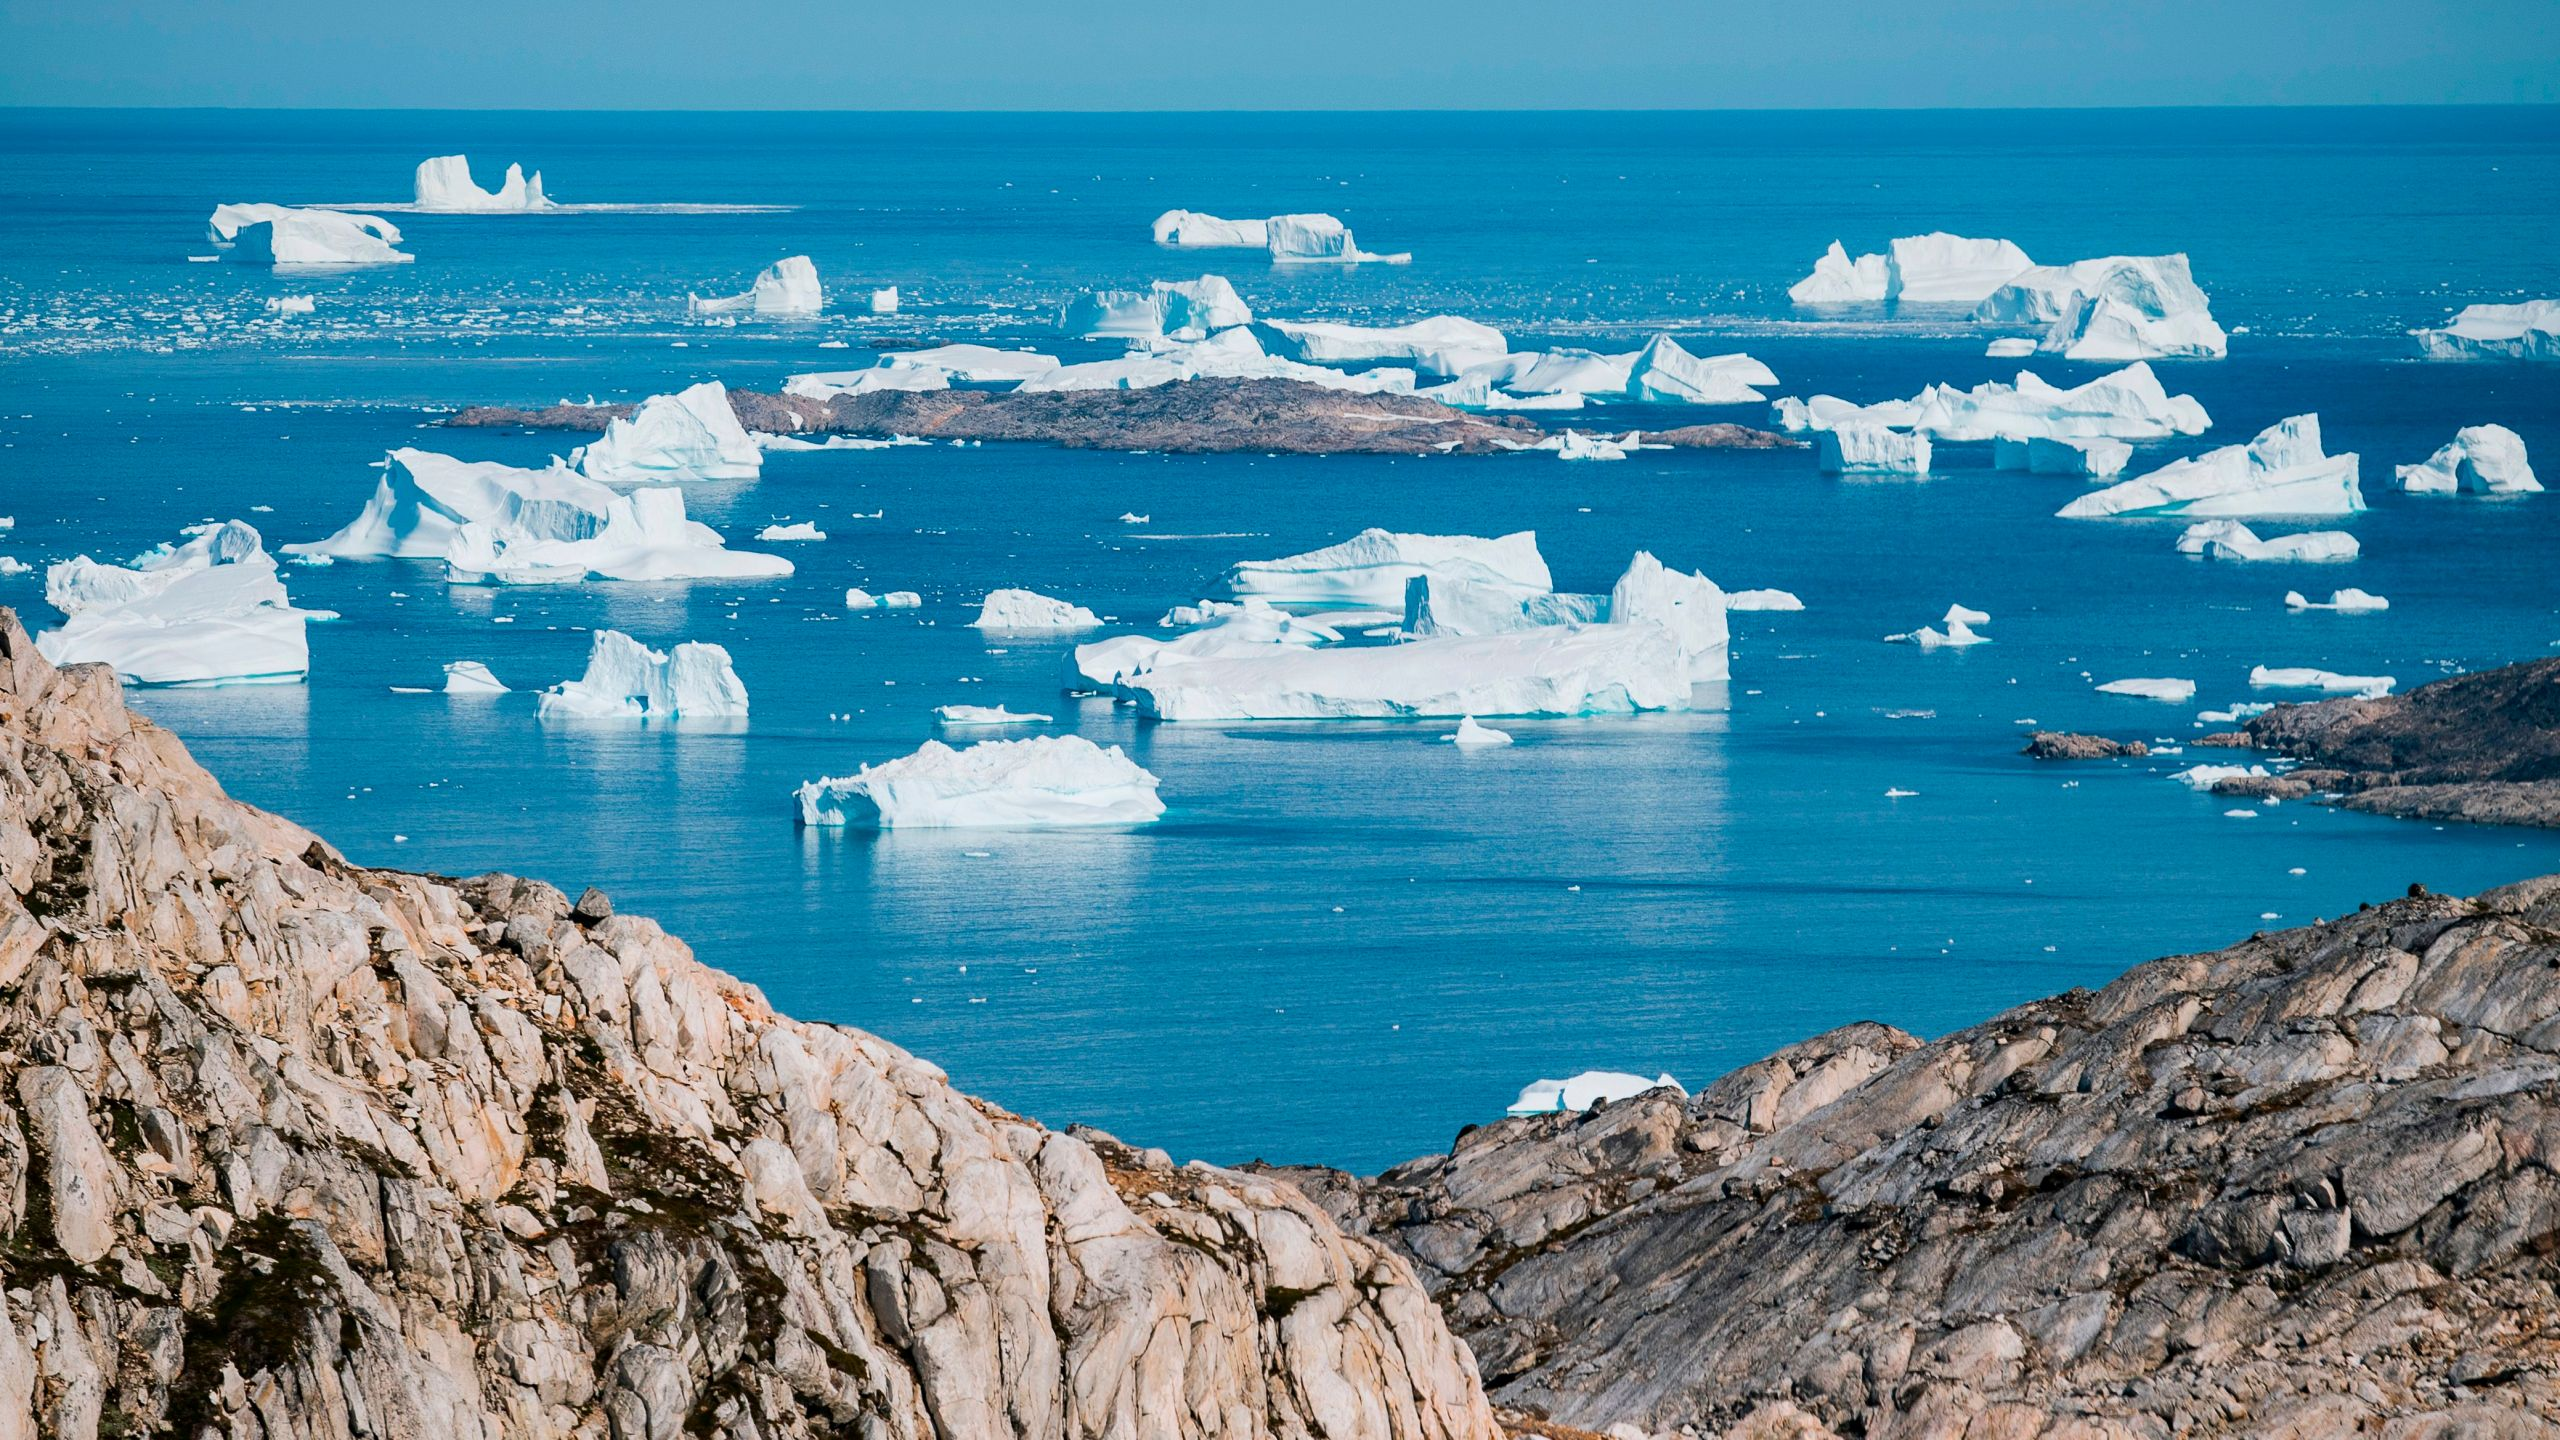 An aerial photo taken on August 15, 2019 shows icebergs as they float along the eastern cost of Greenland near Kulusuk. (Credit: JONATHAN NACKSTRAND/AFP/Getty Images)